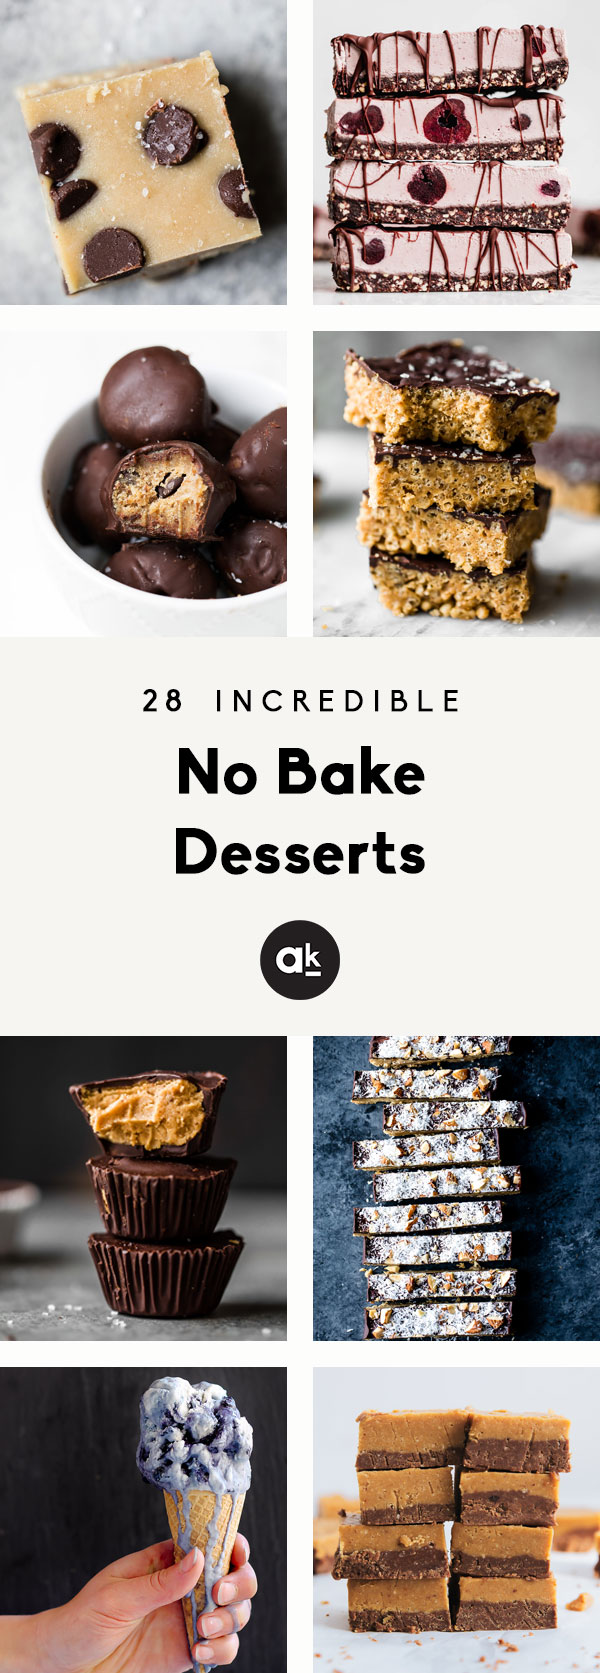 Incredible no bake desserts that are perfect for making all summer! From pies and tarts to decadent bars, these no bake desserts will be your new favorites.